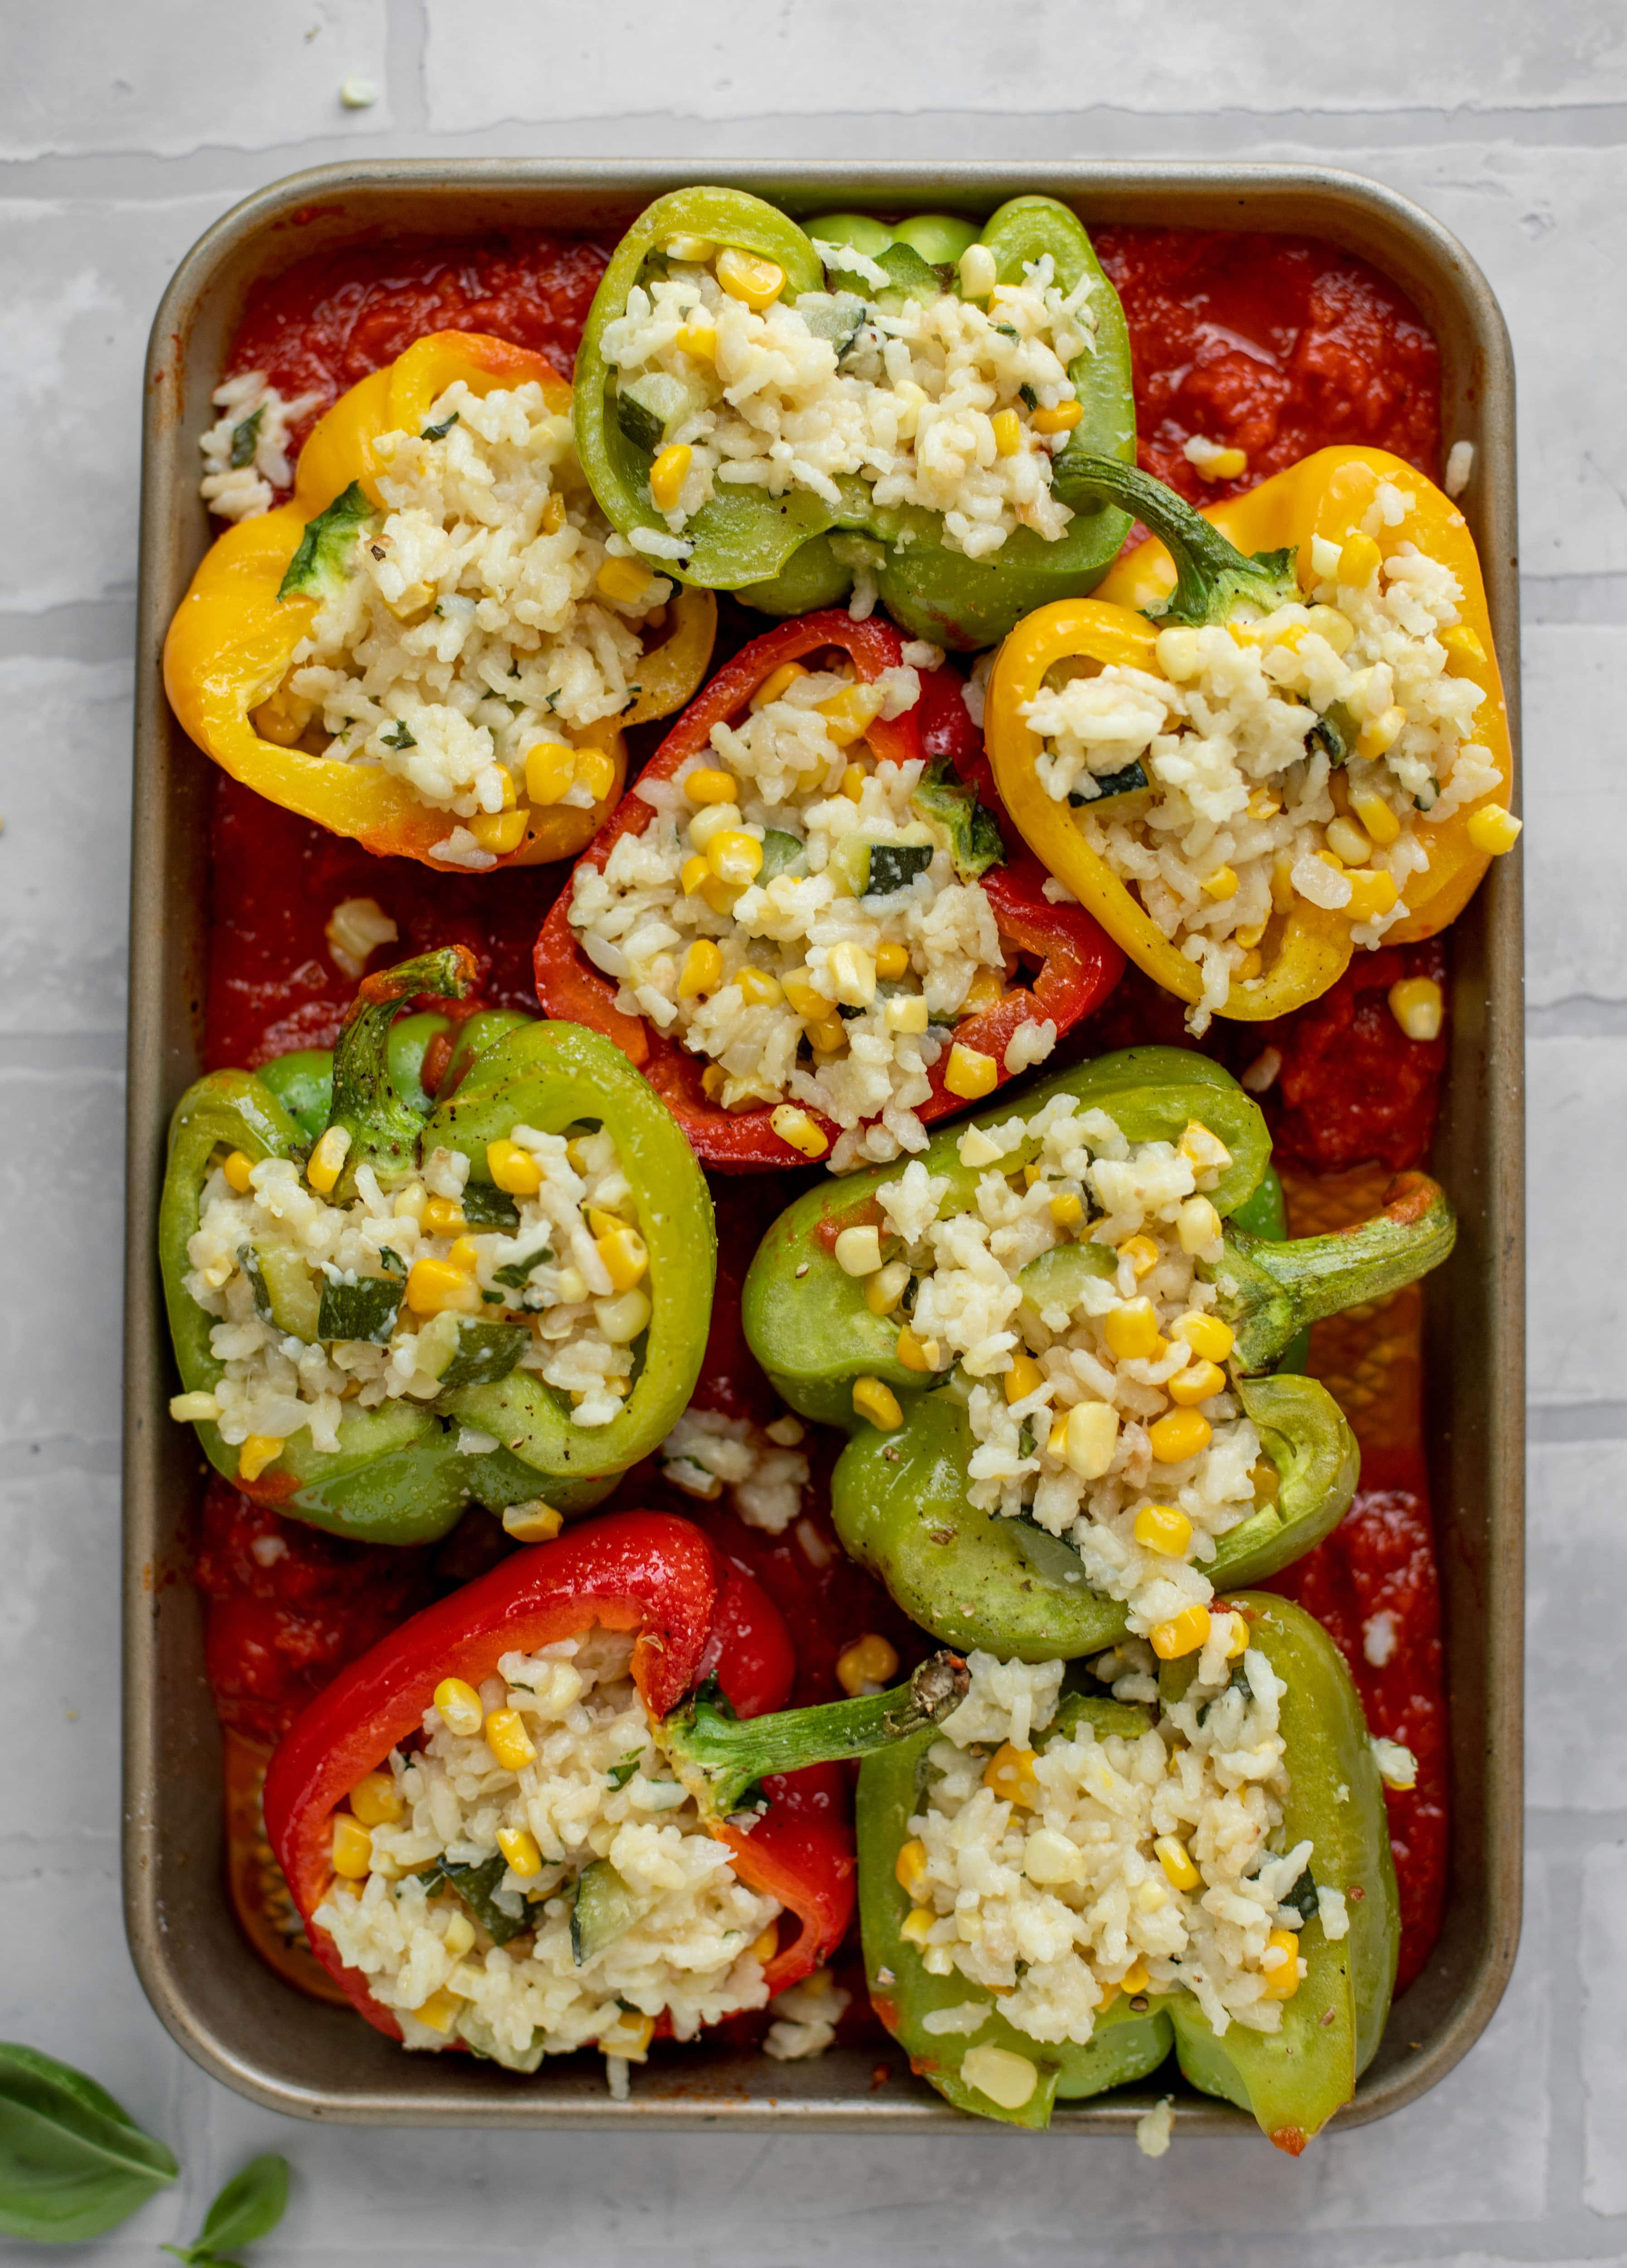 summer risotto stuffed peppers before baking